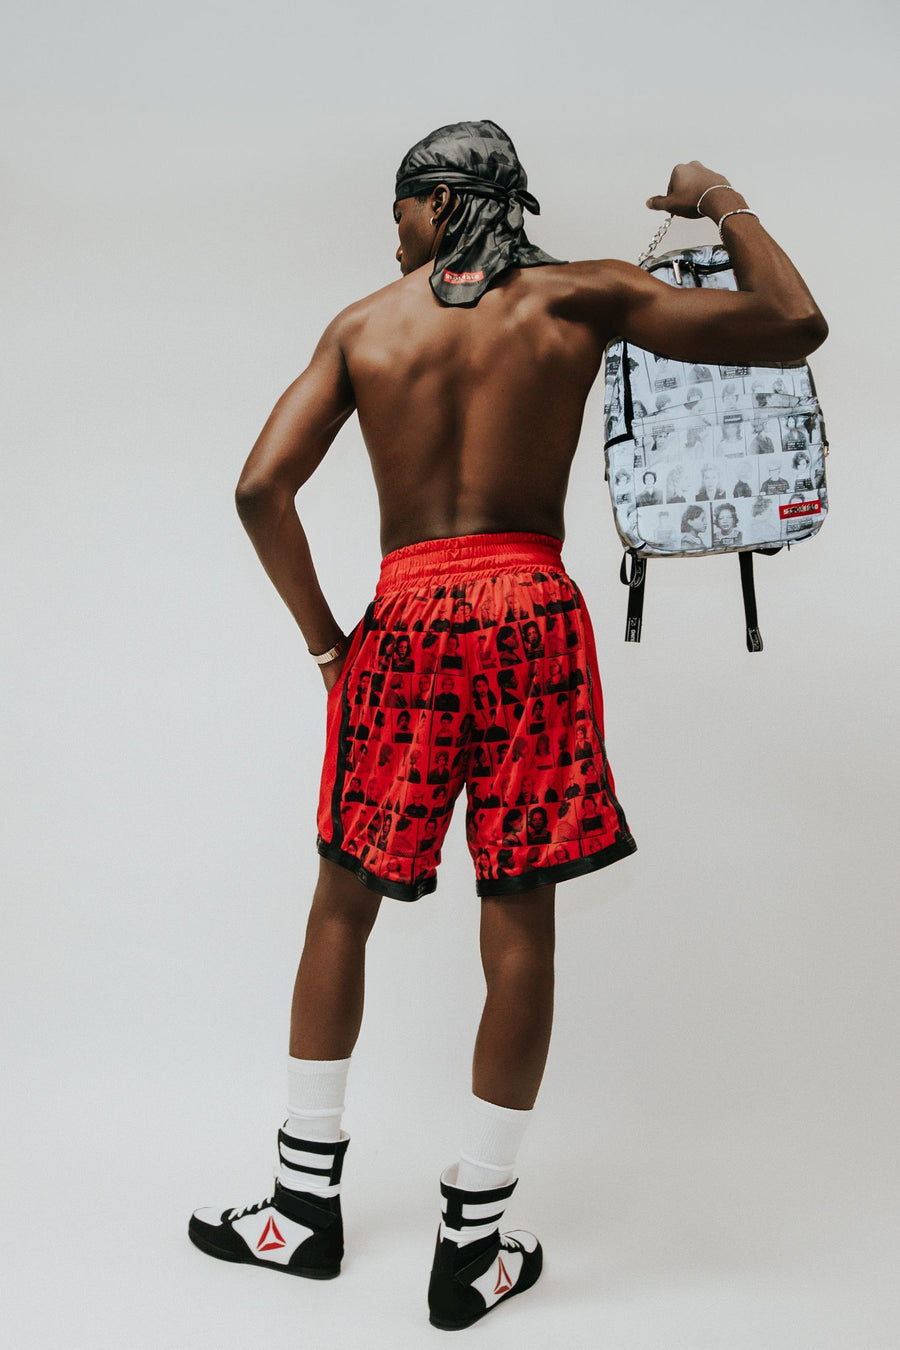 SPRAYGROUND- LAQUAN SMITH SCAMMER BASKETBALL SHORTS SHORTS